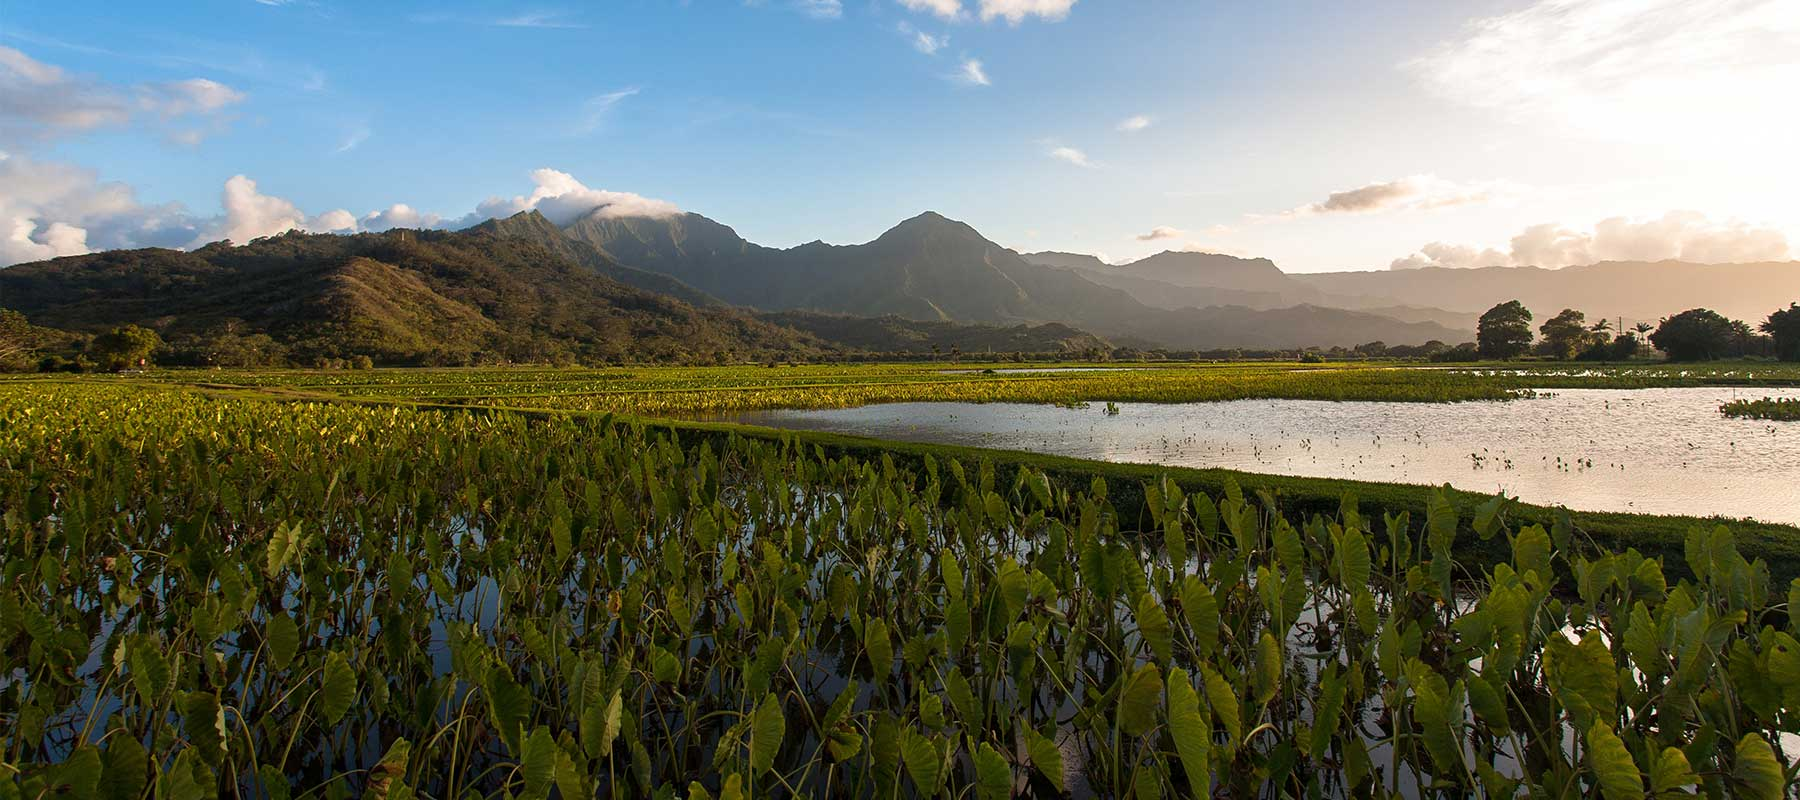 Hanalei valley once home to Kauai first commercial coffee farm, grows taro today